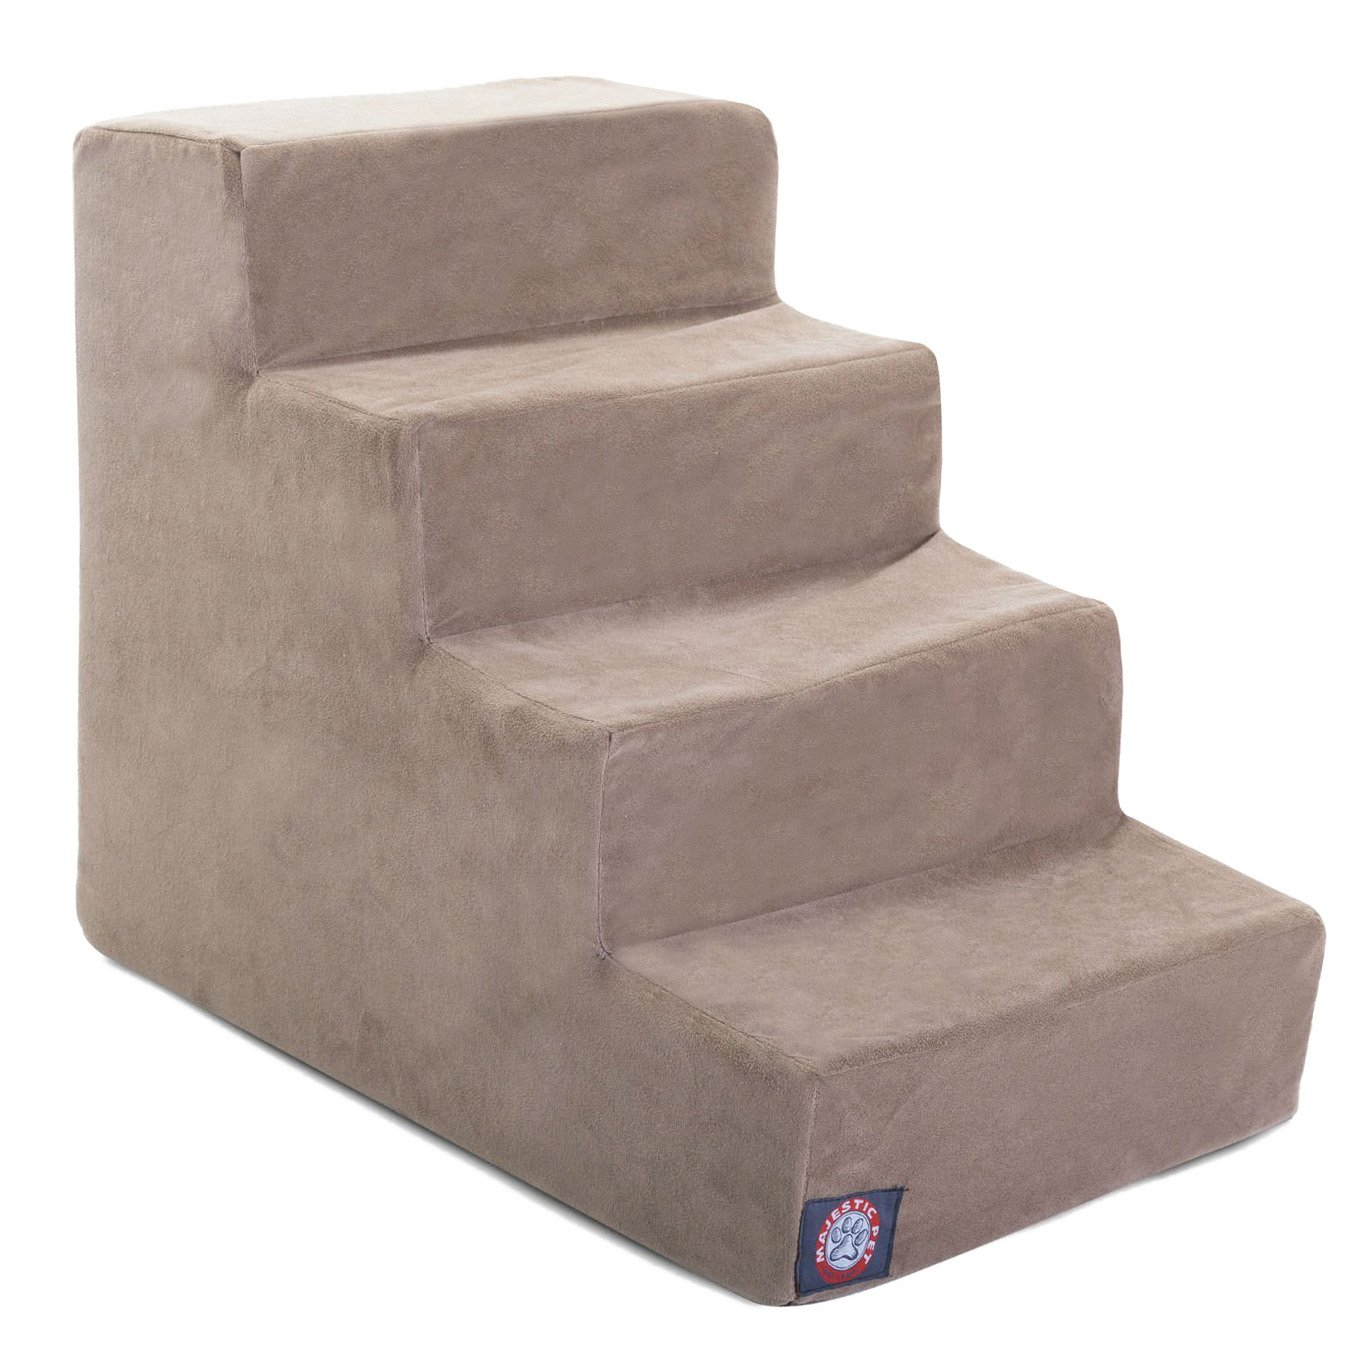 3 Step Black Velvet Suede Pet Stairs durch Majestic Pet Products